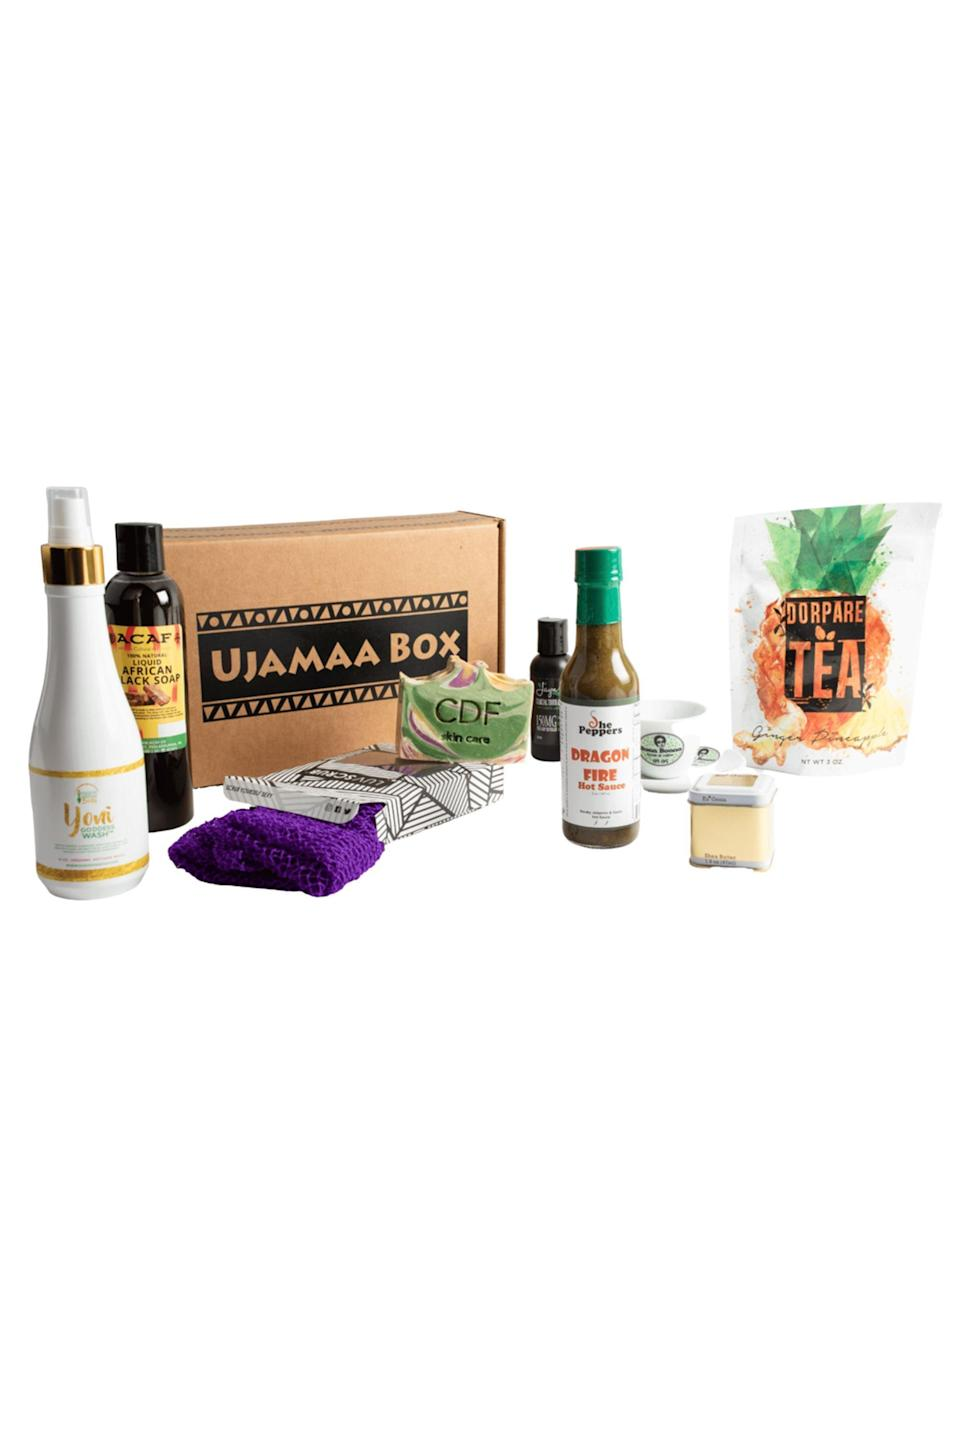 """<p>ujamaabox.com</p><p><strong>$60.00</strong></p><p><a href=""""https://ujamaabox.com/product/quarterly-ujamaa-box-2/"""" rel=""""nofollow noopener"""" target=""""_blank"""" data-ylk=""""slk:Shop Now"""" class=""""link rapid-noclick-resp"""">Shop Now</a></p><p>Subscribing to the Ujamaa Box means supporting up to six different Black-owned businesses every month. It's a great way to uplift the Black community while treating yourself to everything from hair care to canvas art.</p>"""